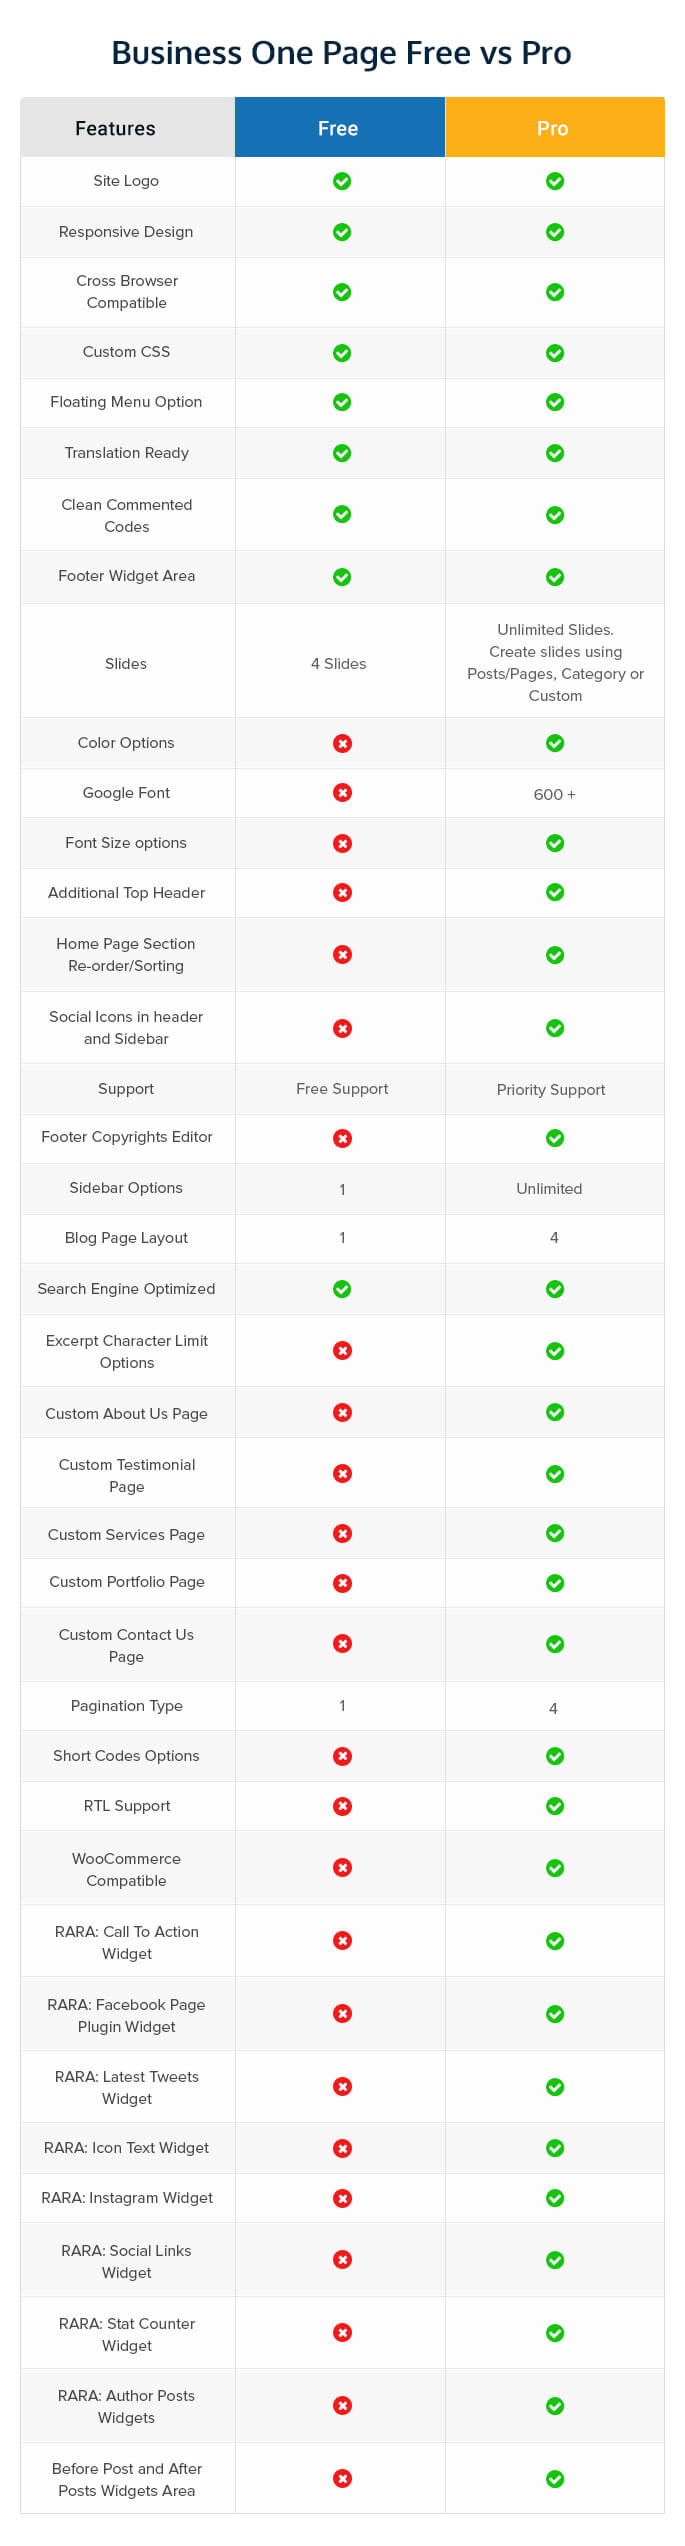 Business one page free Vs pro comparison chart